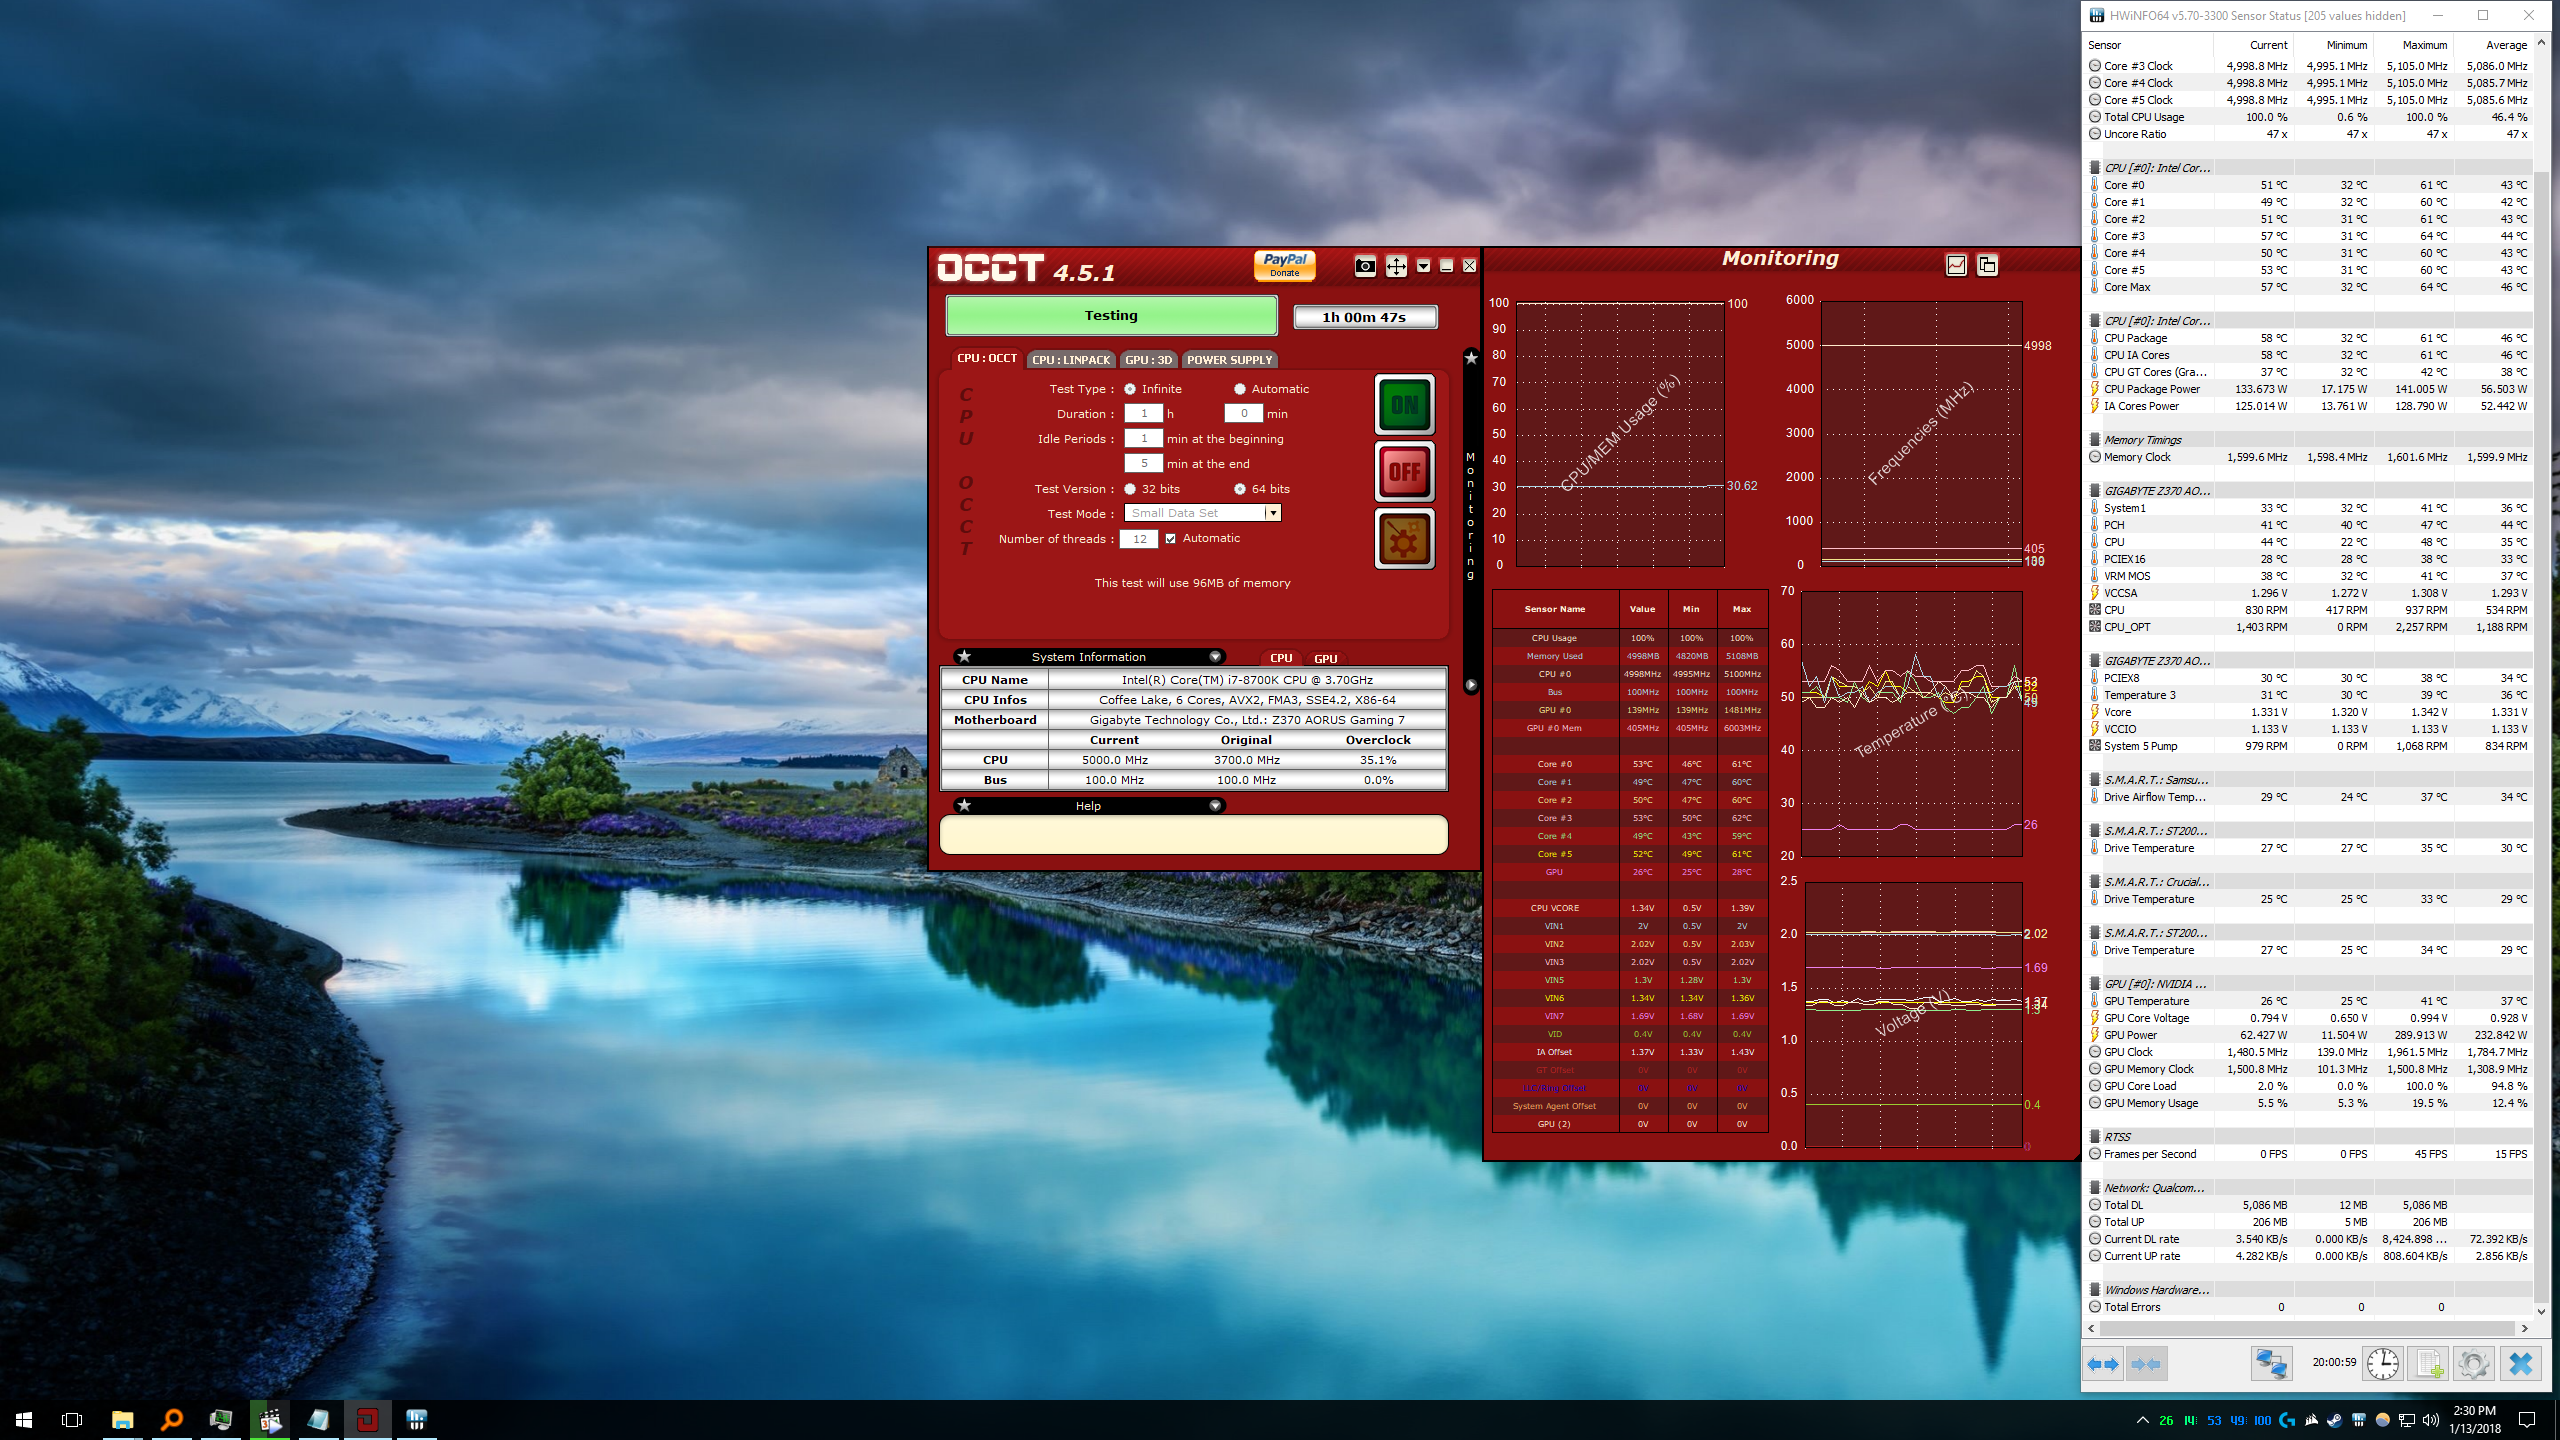 i7 8700k overclock results and settings - Page 229